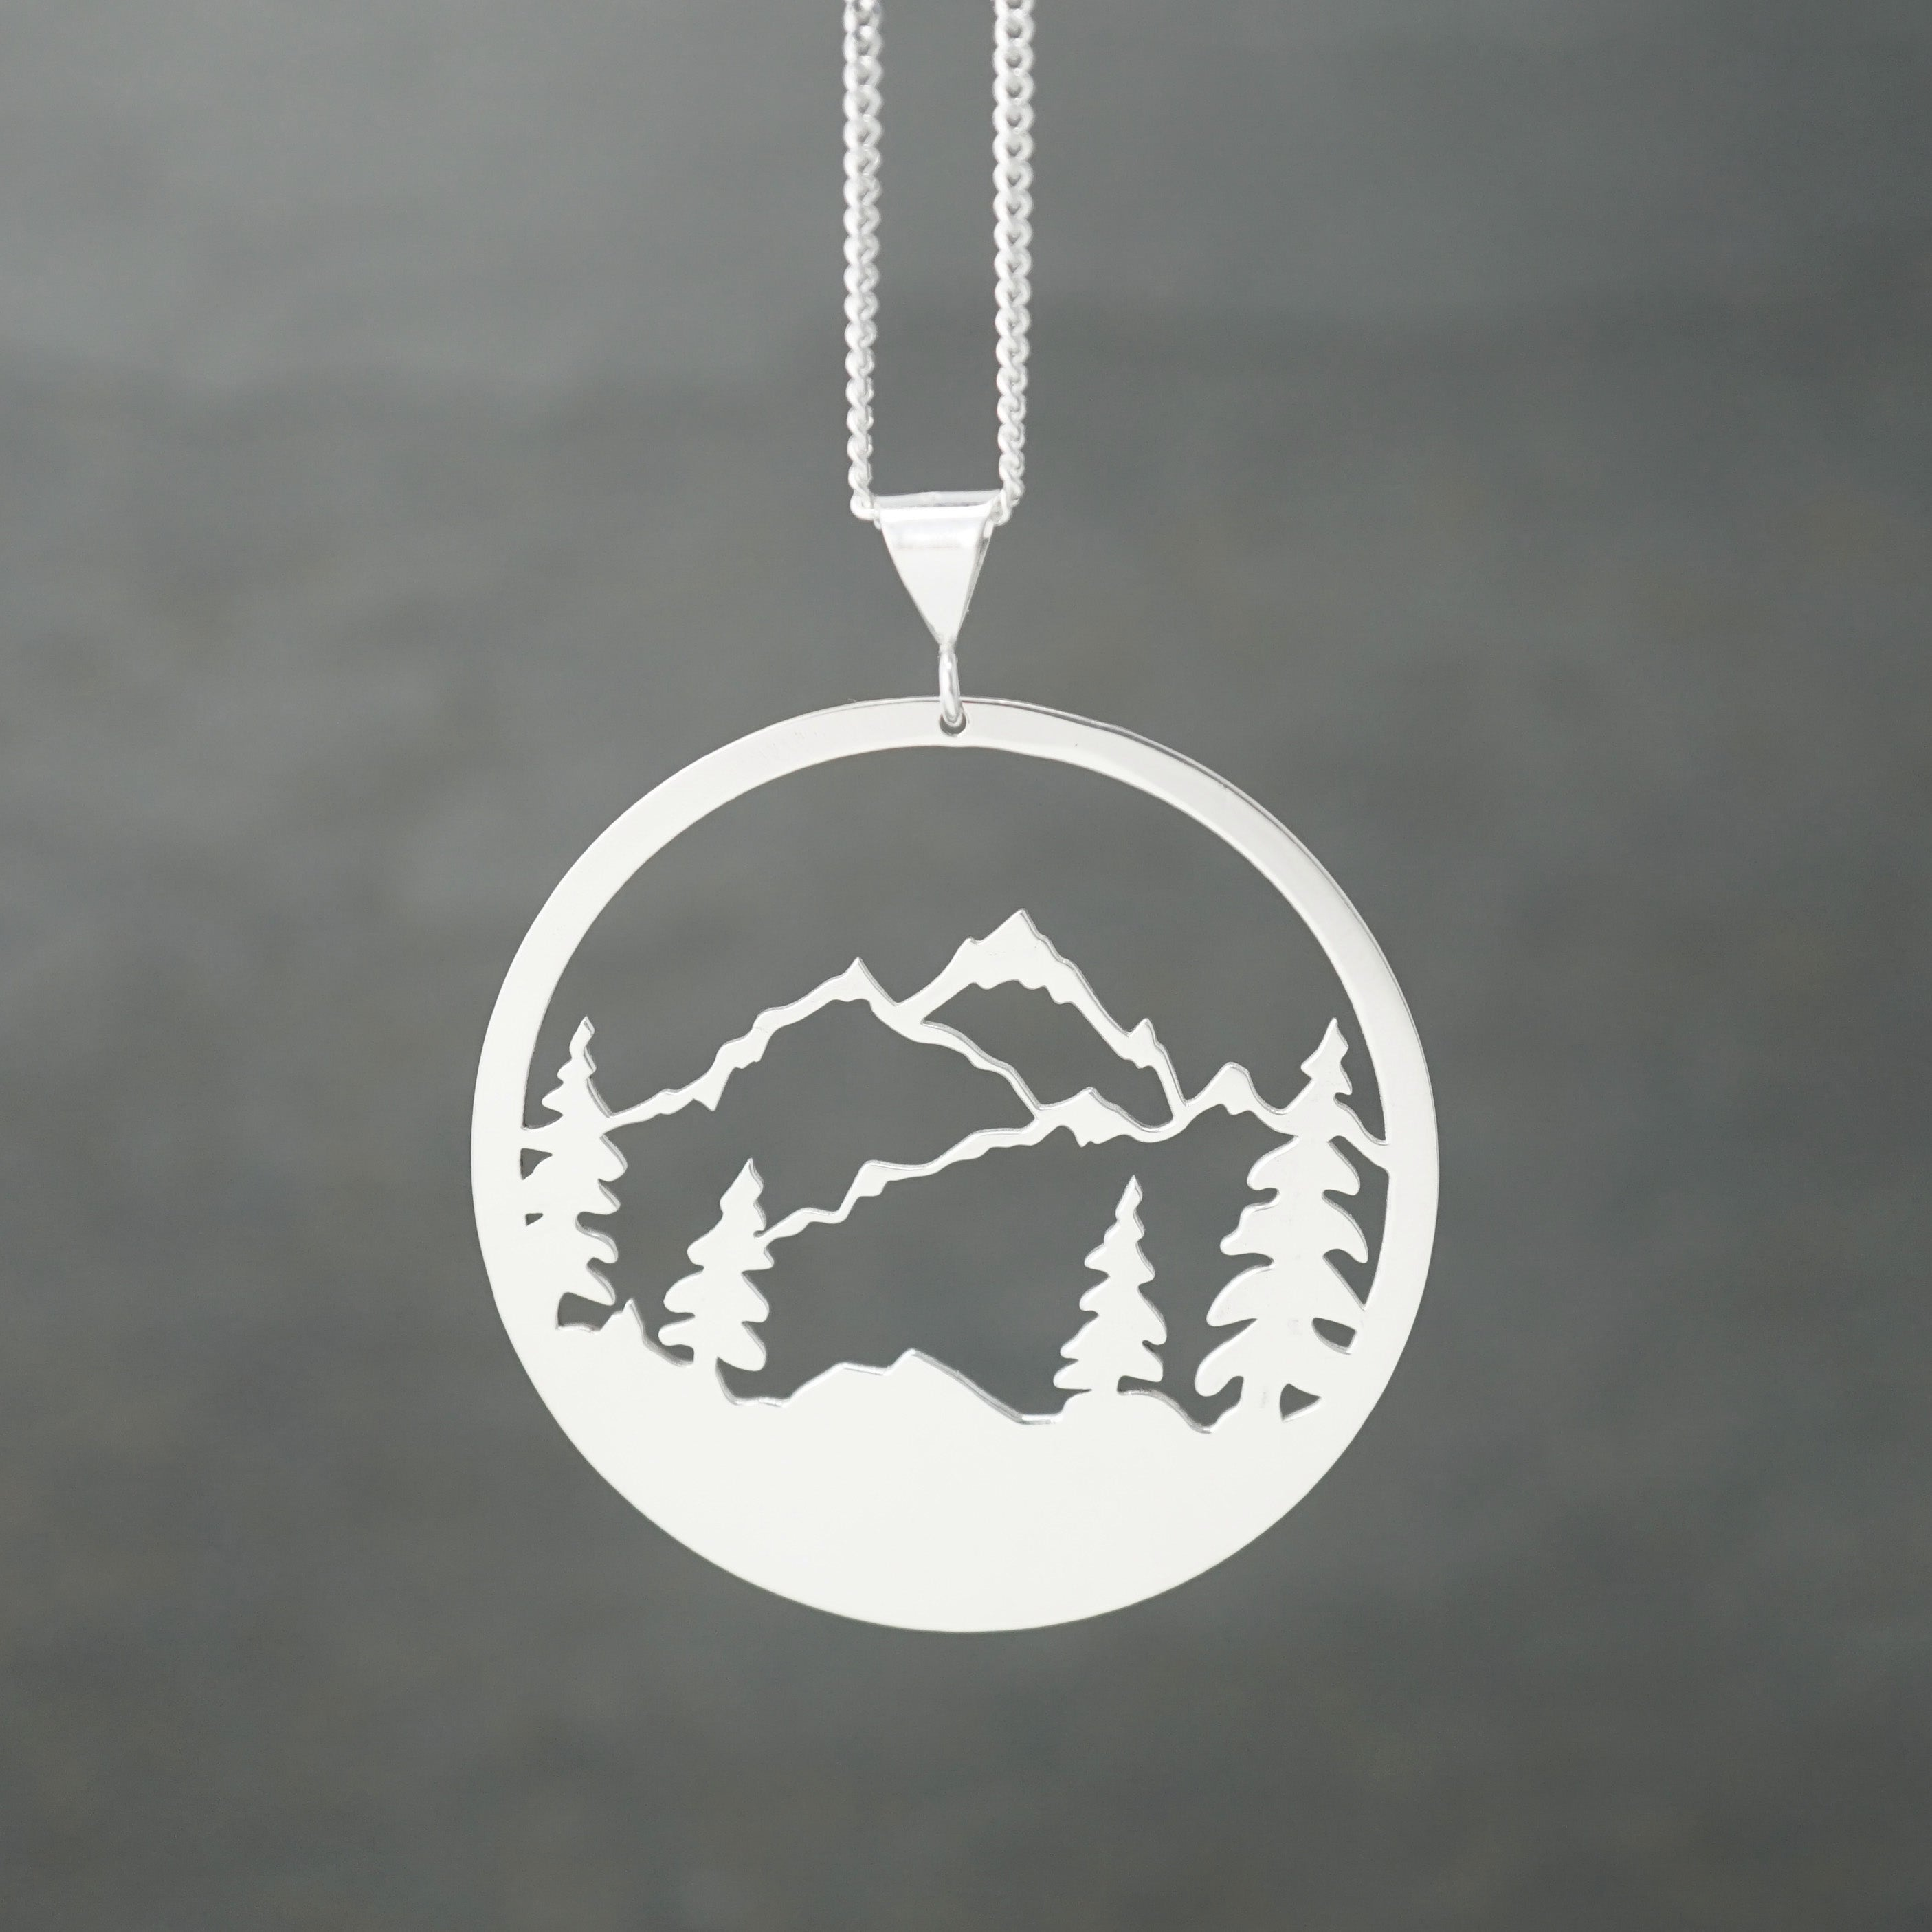 Detailed Mountains Pendant